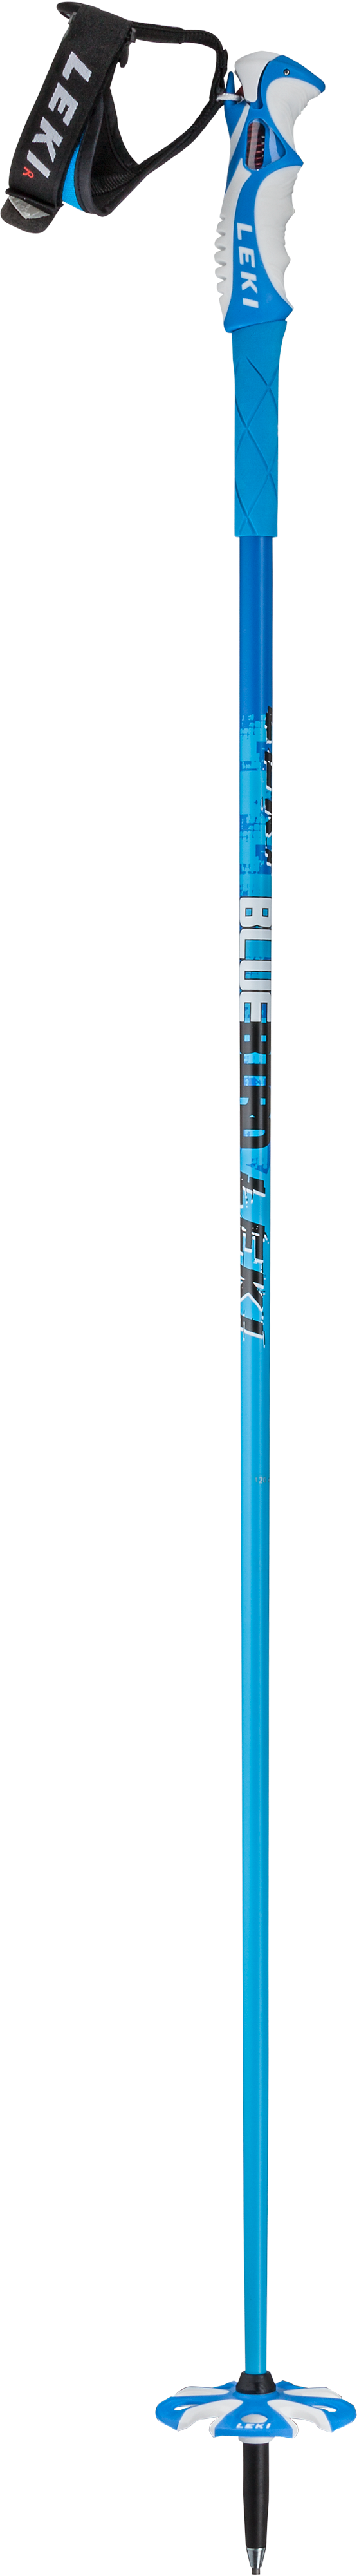 Blue Bird carbon 120 cm